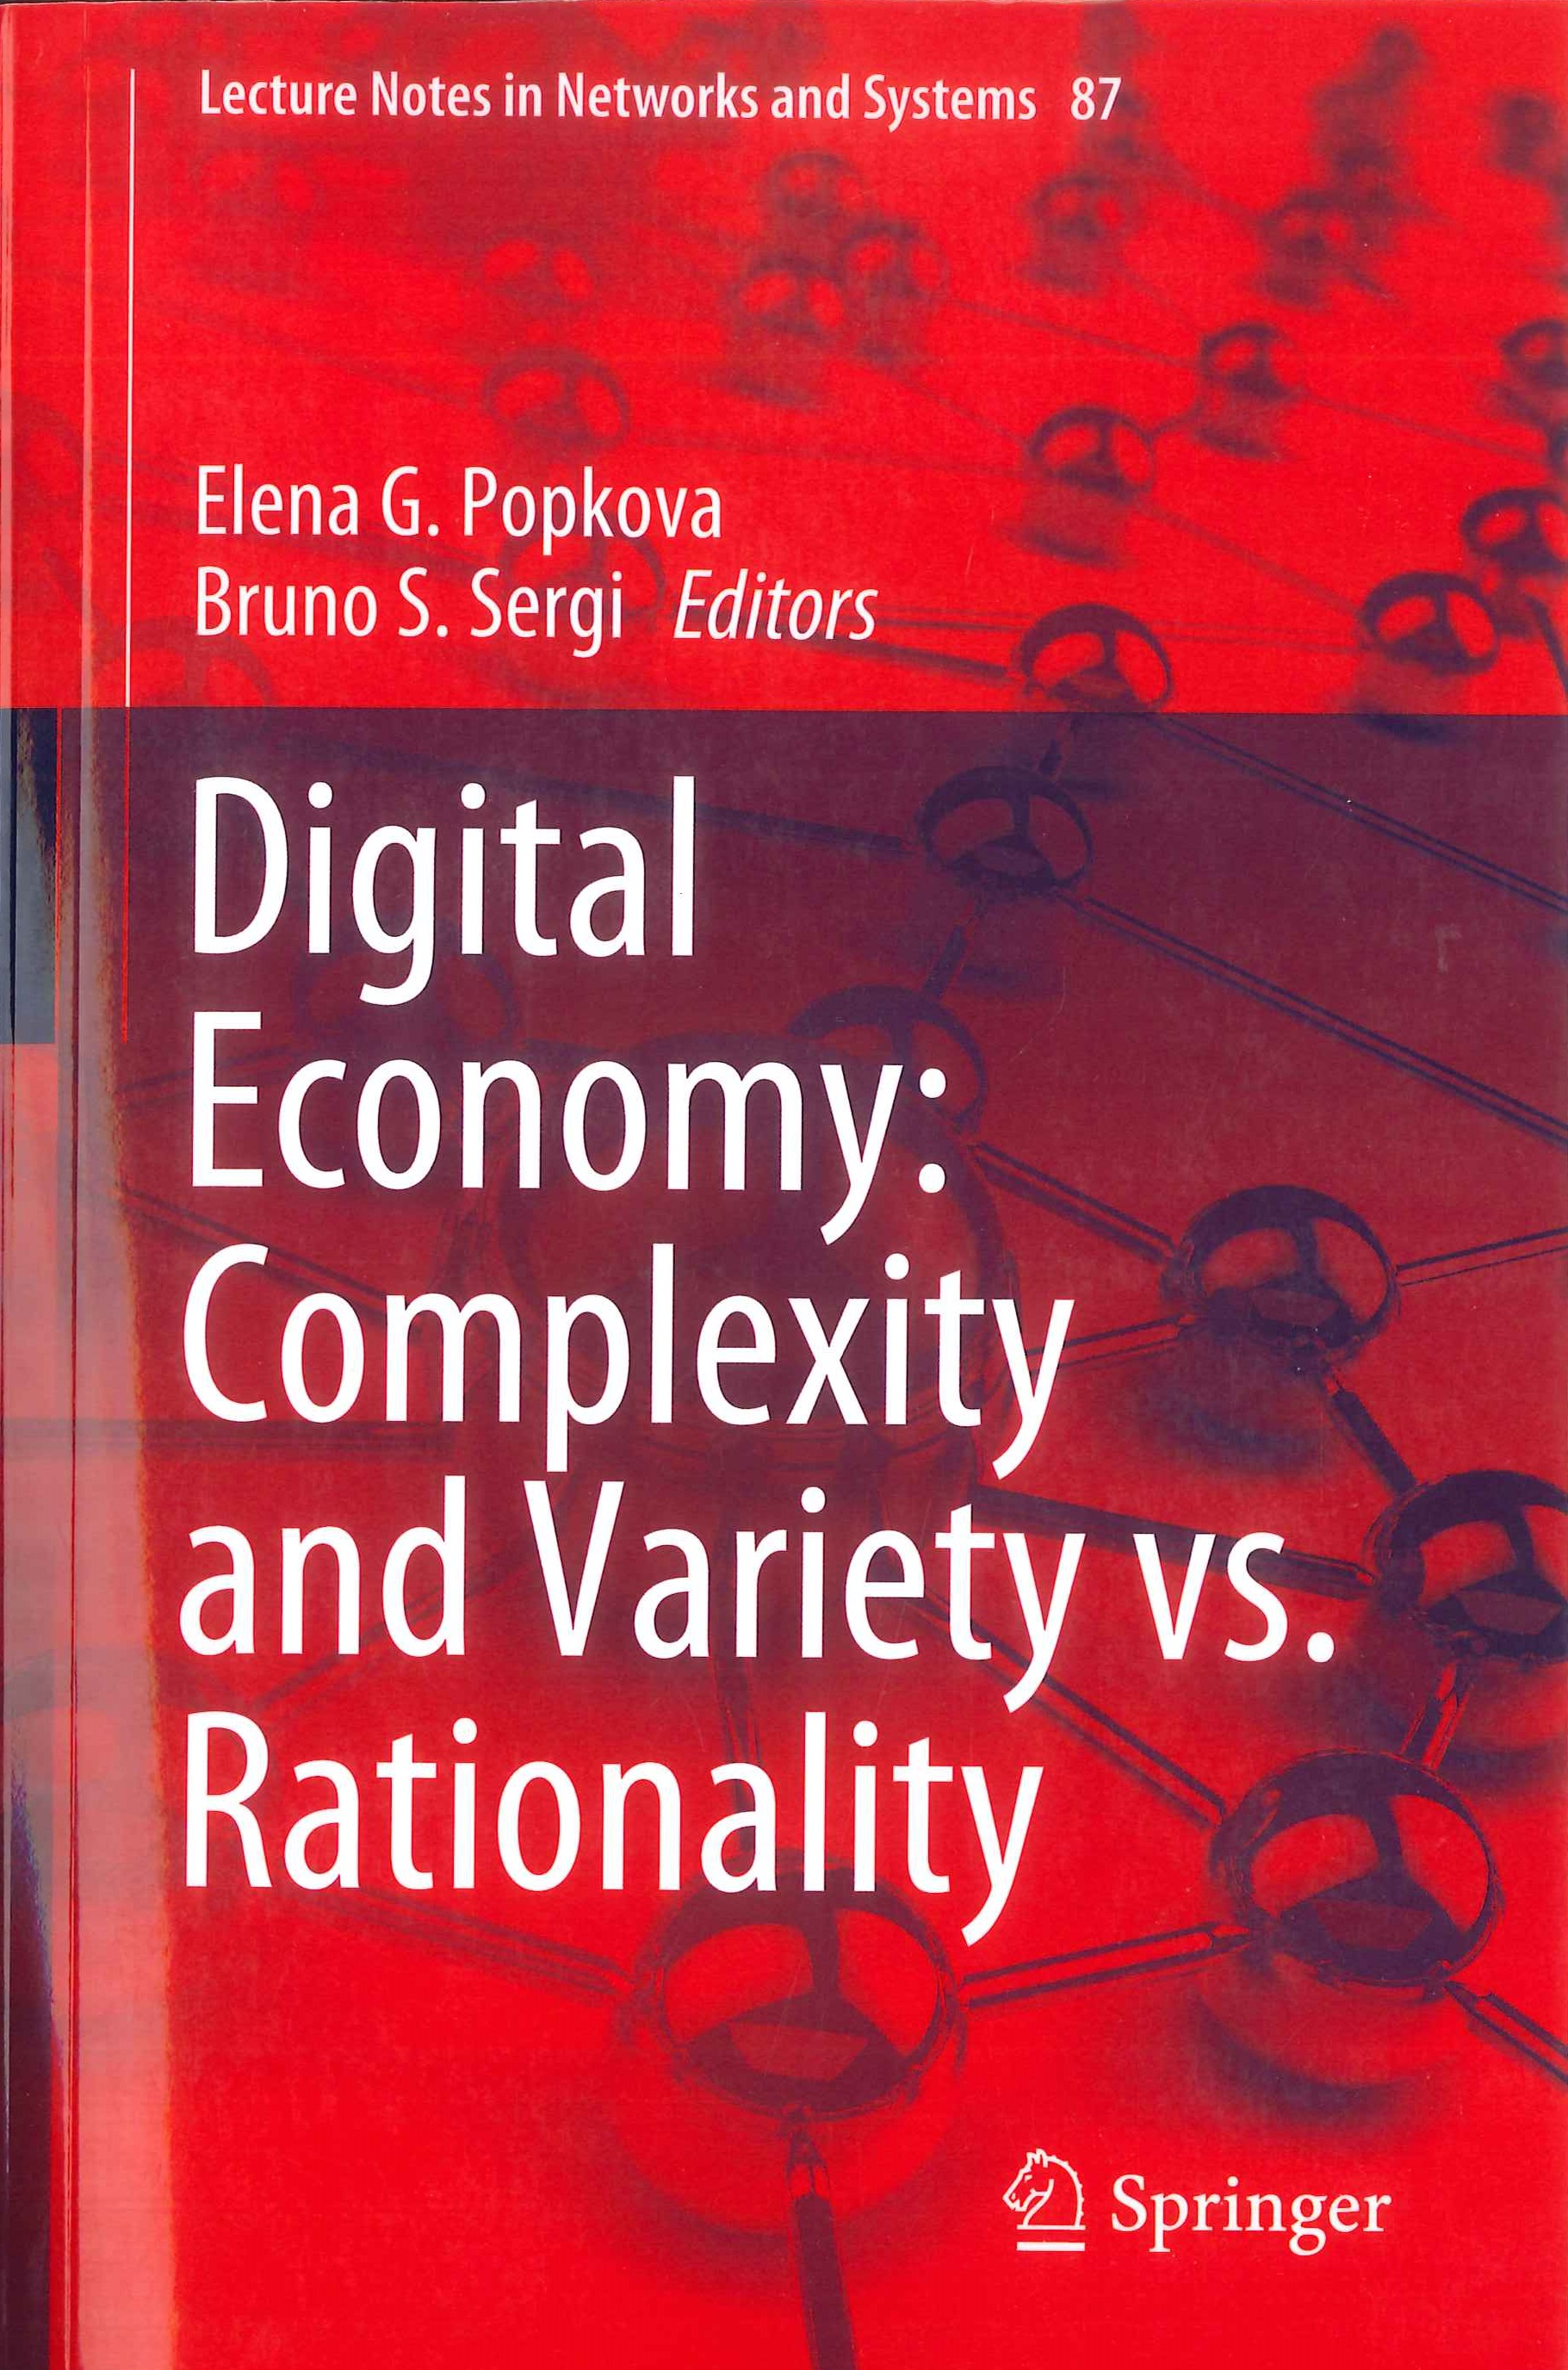 Digital economy:complexity and variety vs. rationality